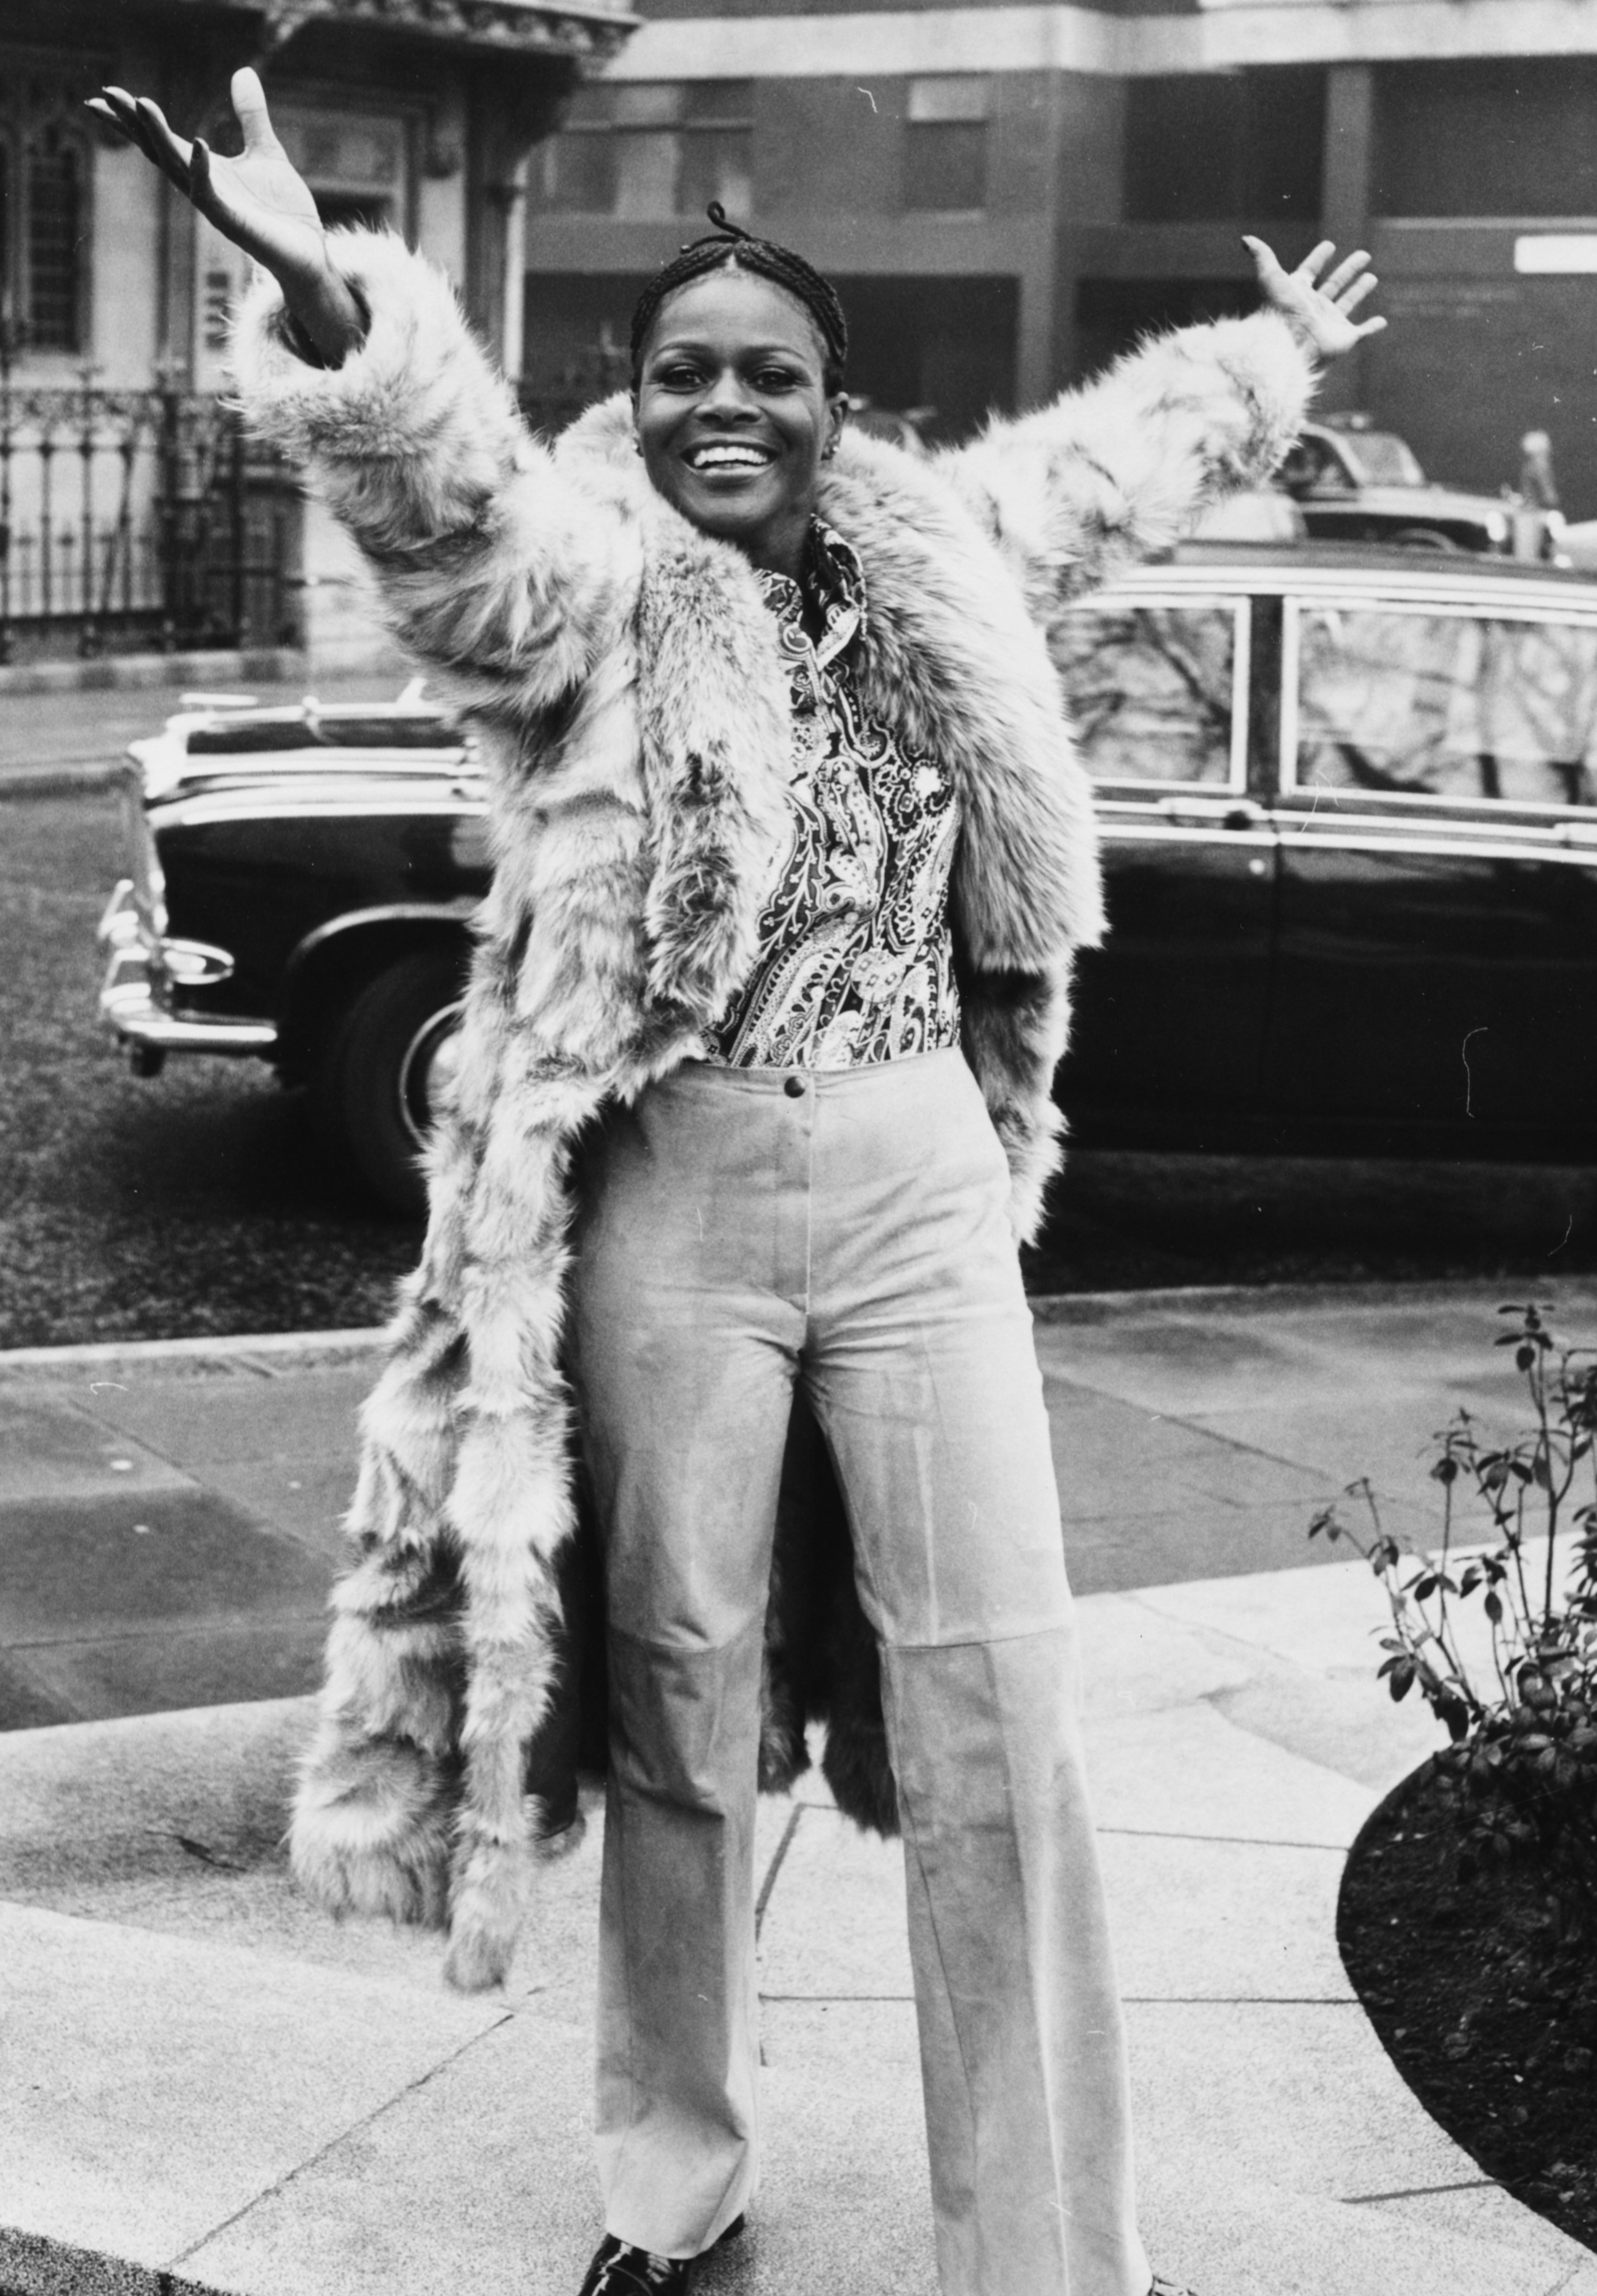 Cicely Tyson smiling and raising her arms in the air during a visit to London, February 19, 1973.| Source: Getty Images